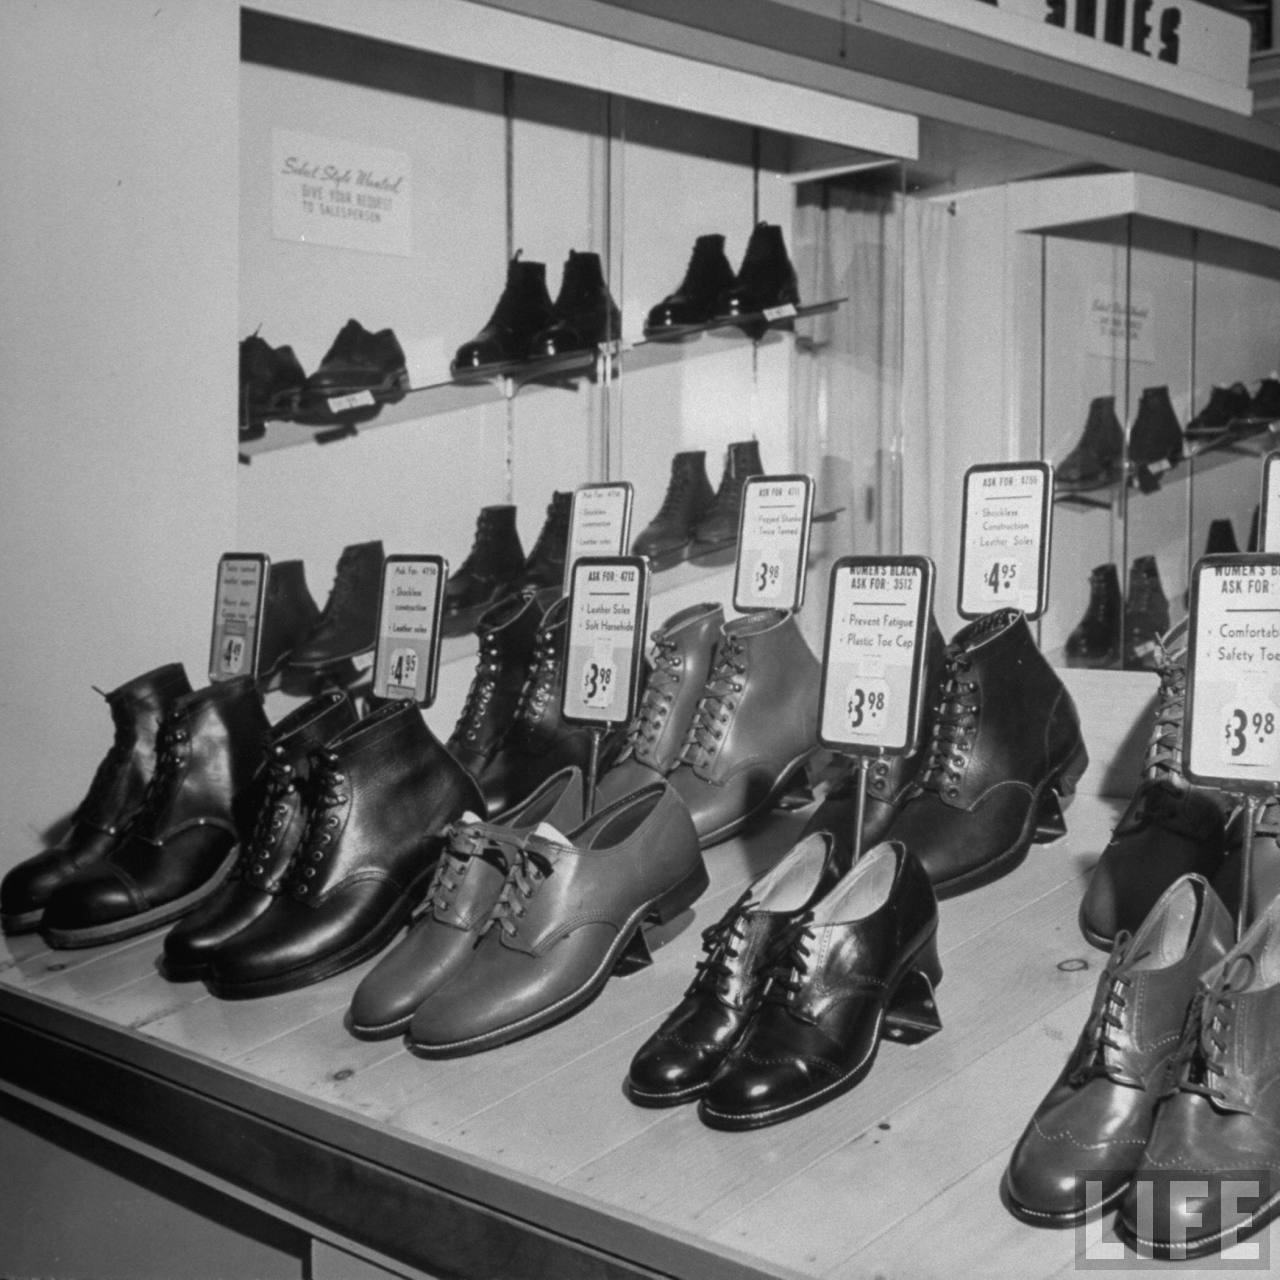 Shoes being displayed for sale in a Sears Roebuck store. --West Alis, WI 1943